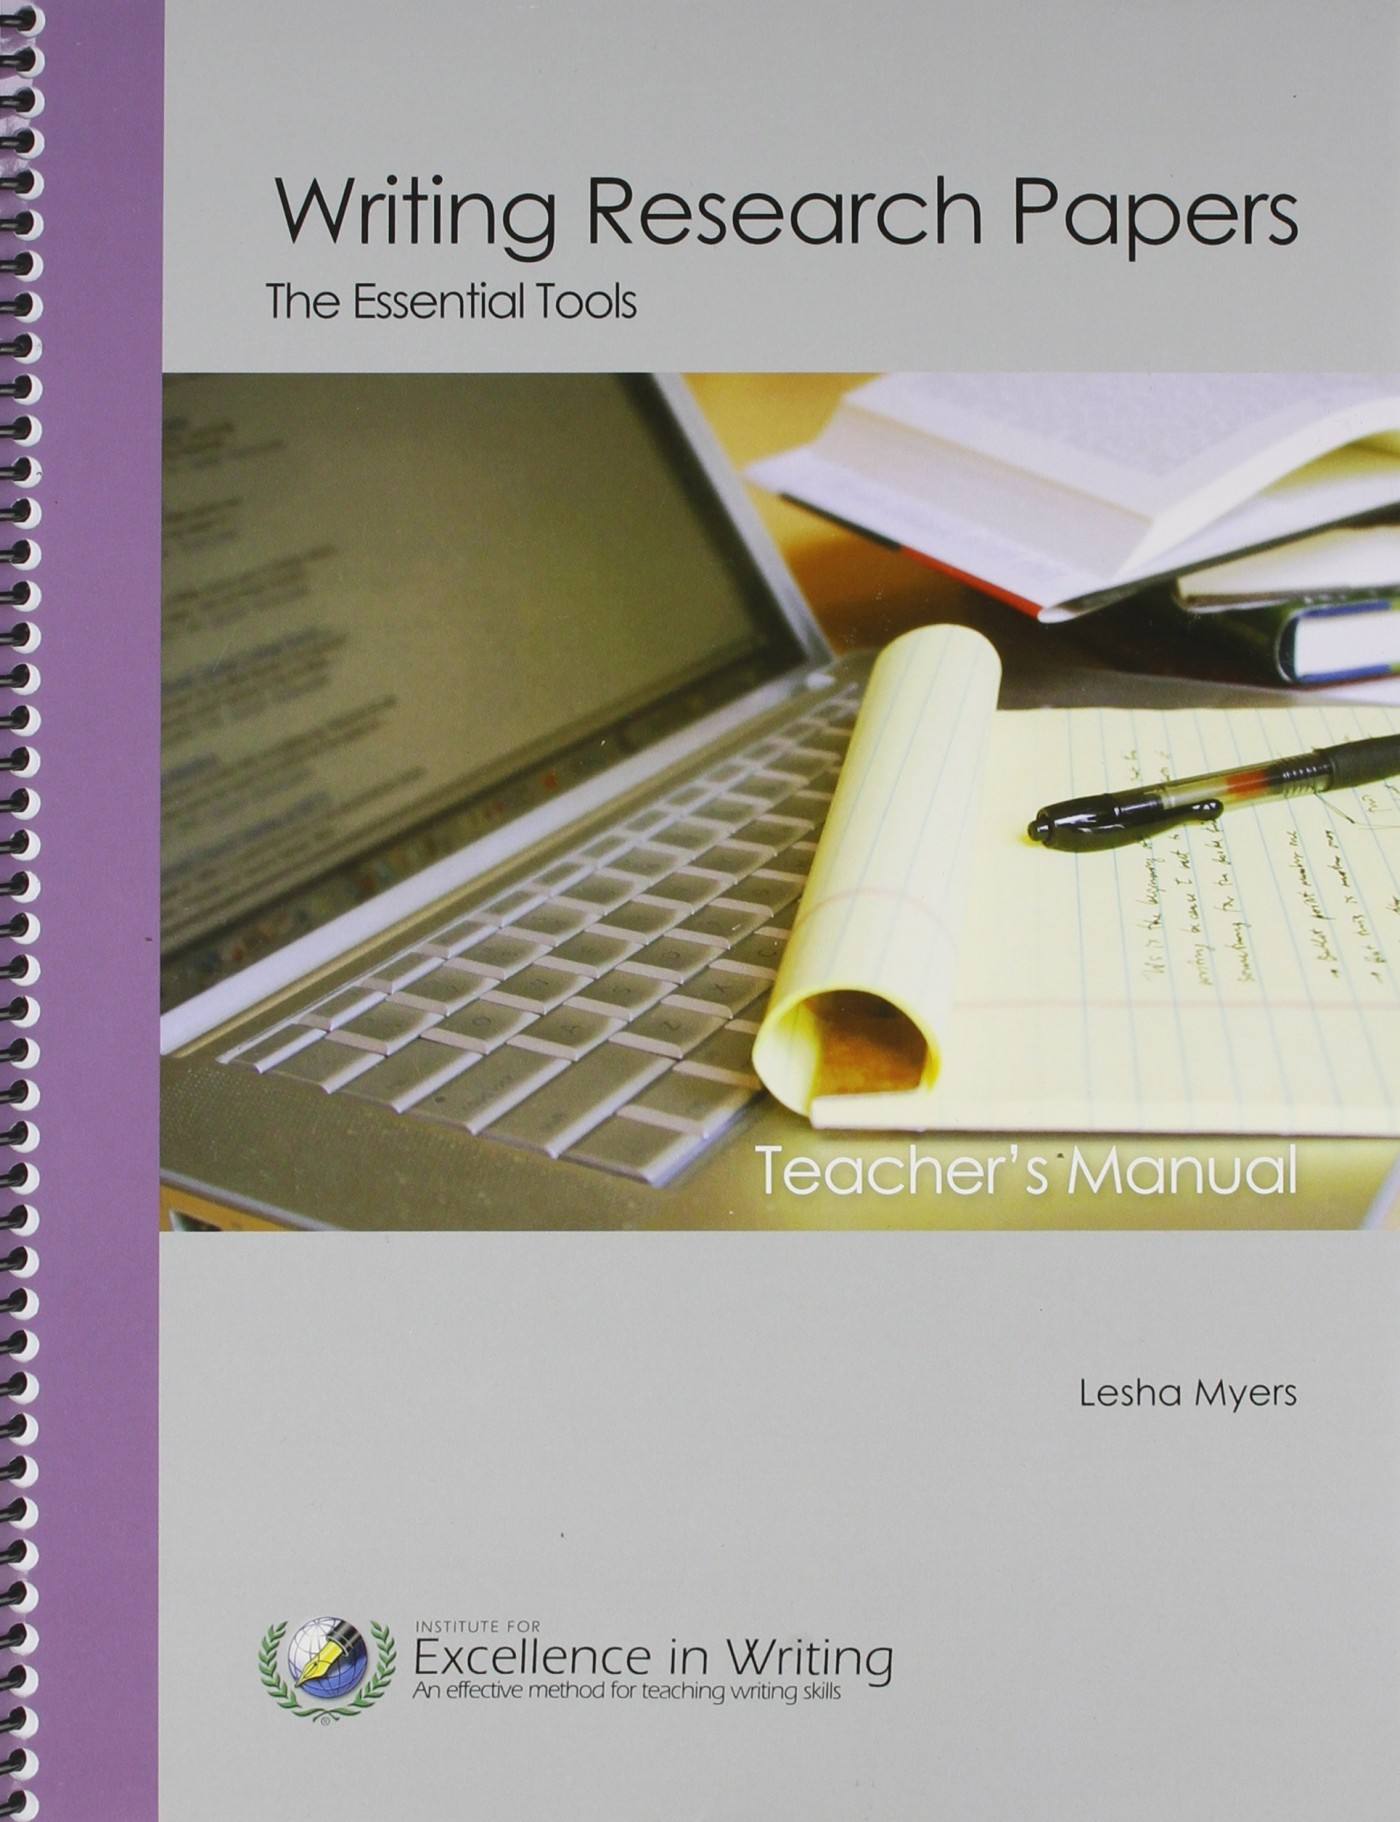 021 91ax63bn6xl Writing Research Striking Paper Papers A Complete Guide 16th Edition Pdf James D Lester Outline 1400